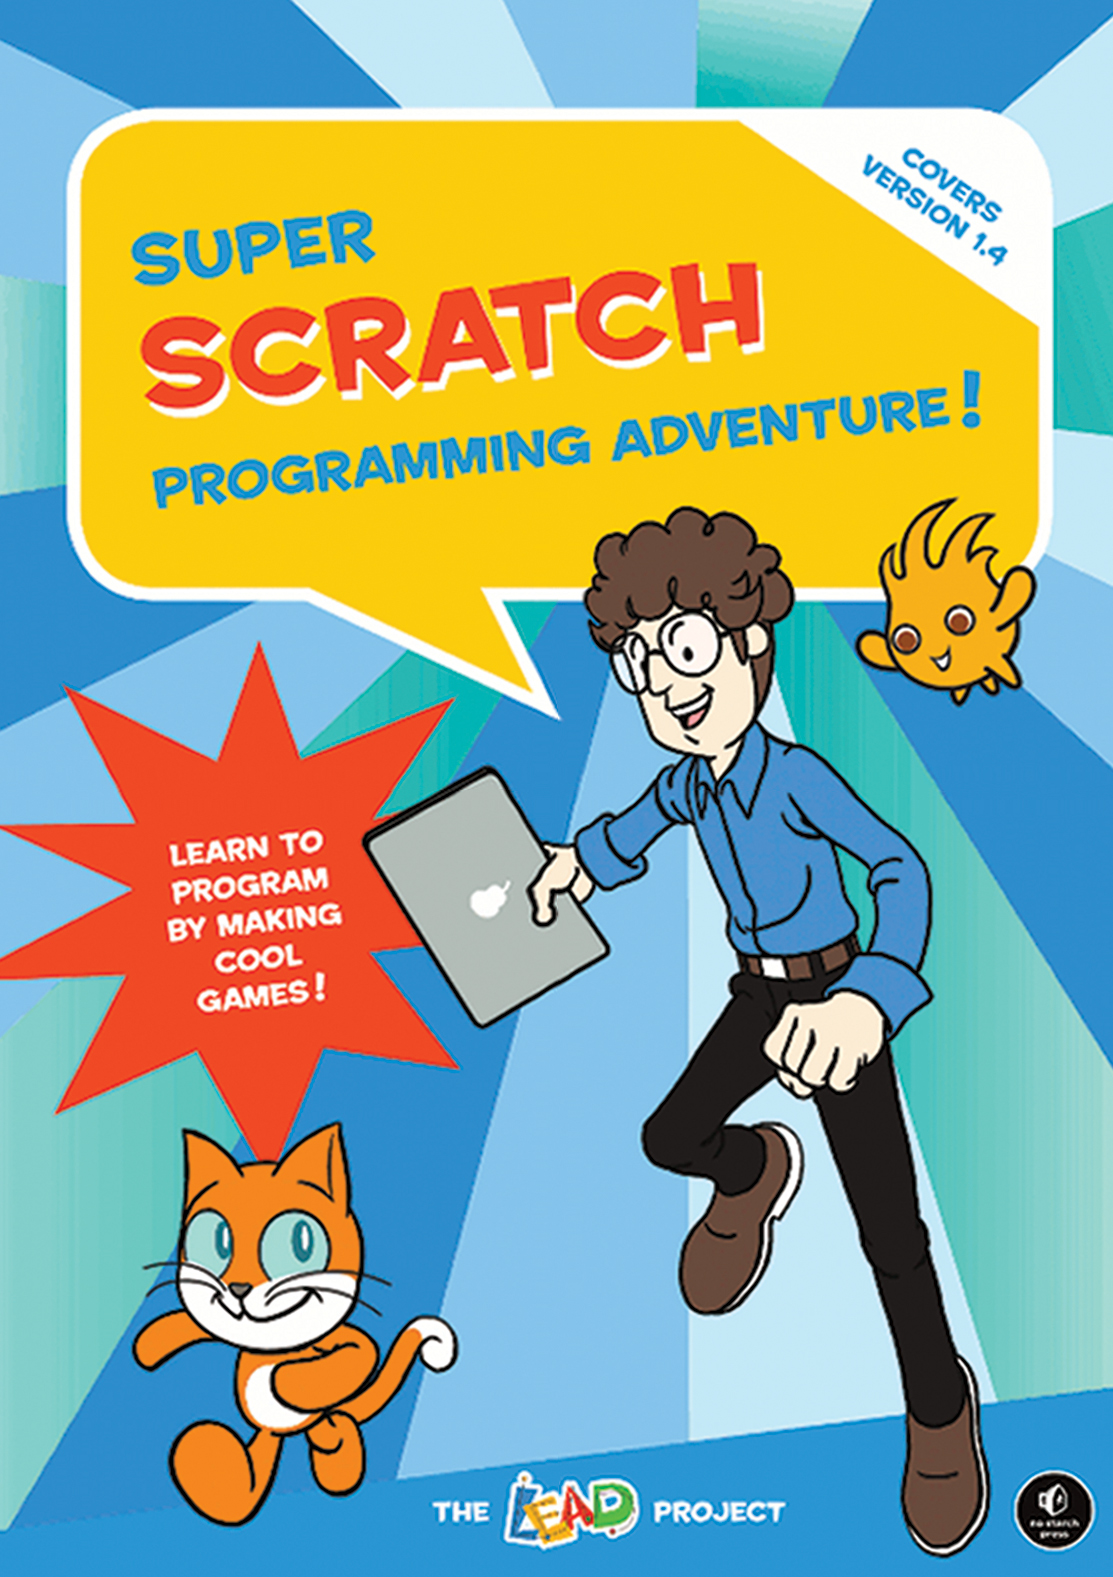 Super Scratch Programming Adventure rom the LEAD Project